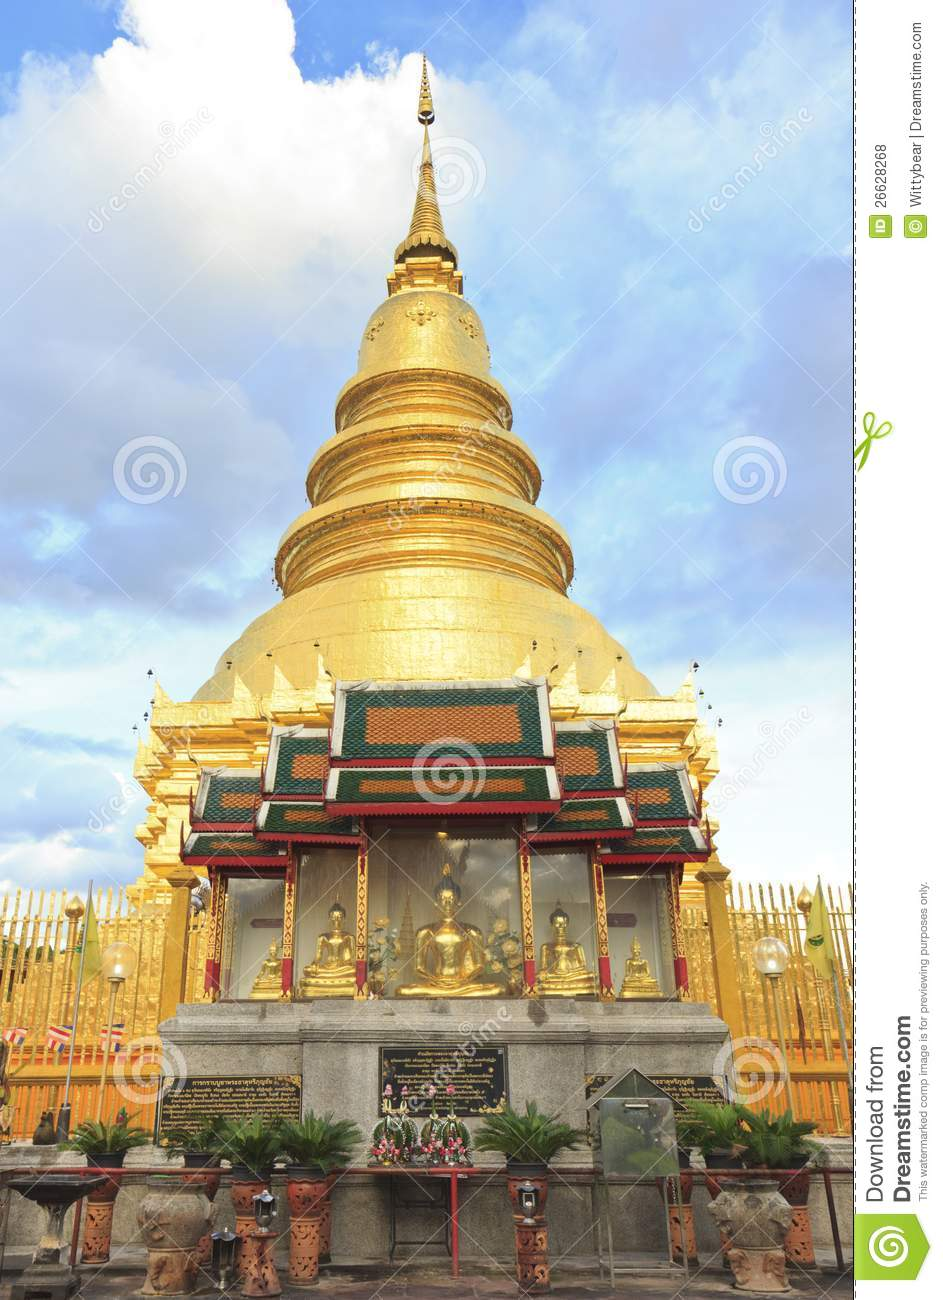 Beautiful Pagoda In The Northern Thailand Temple Stock